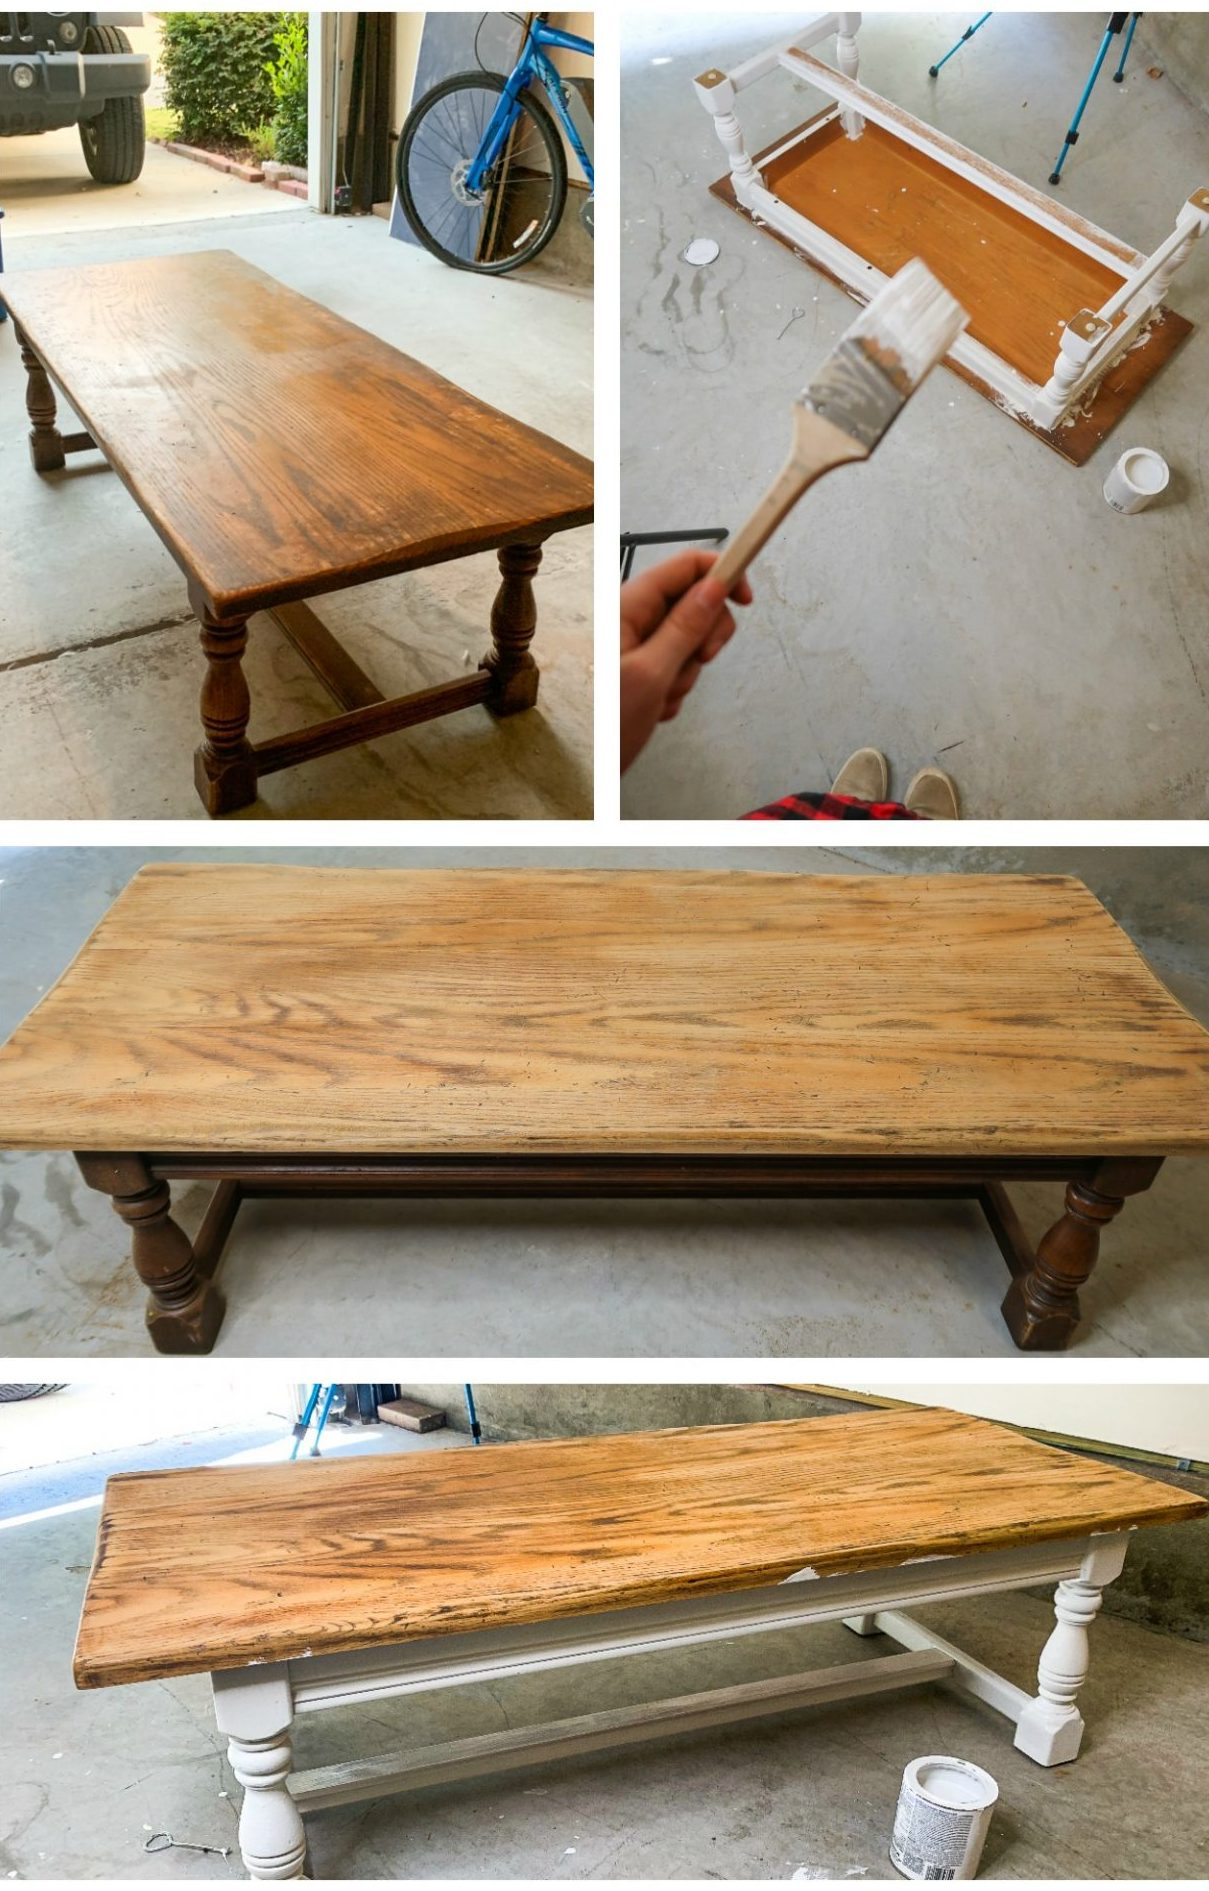 DIY, distressed, white wash furniture , farm house look, how to farm house, distress coffee table, diy farmhouse, pumpkin, fall, coffee table , refurbish project, paint white, chalk paint, home decor, wax furniture, sanding, how to diy, how to refurbish, before and after coffee table